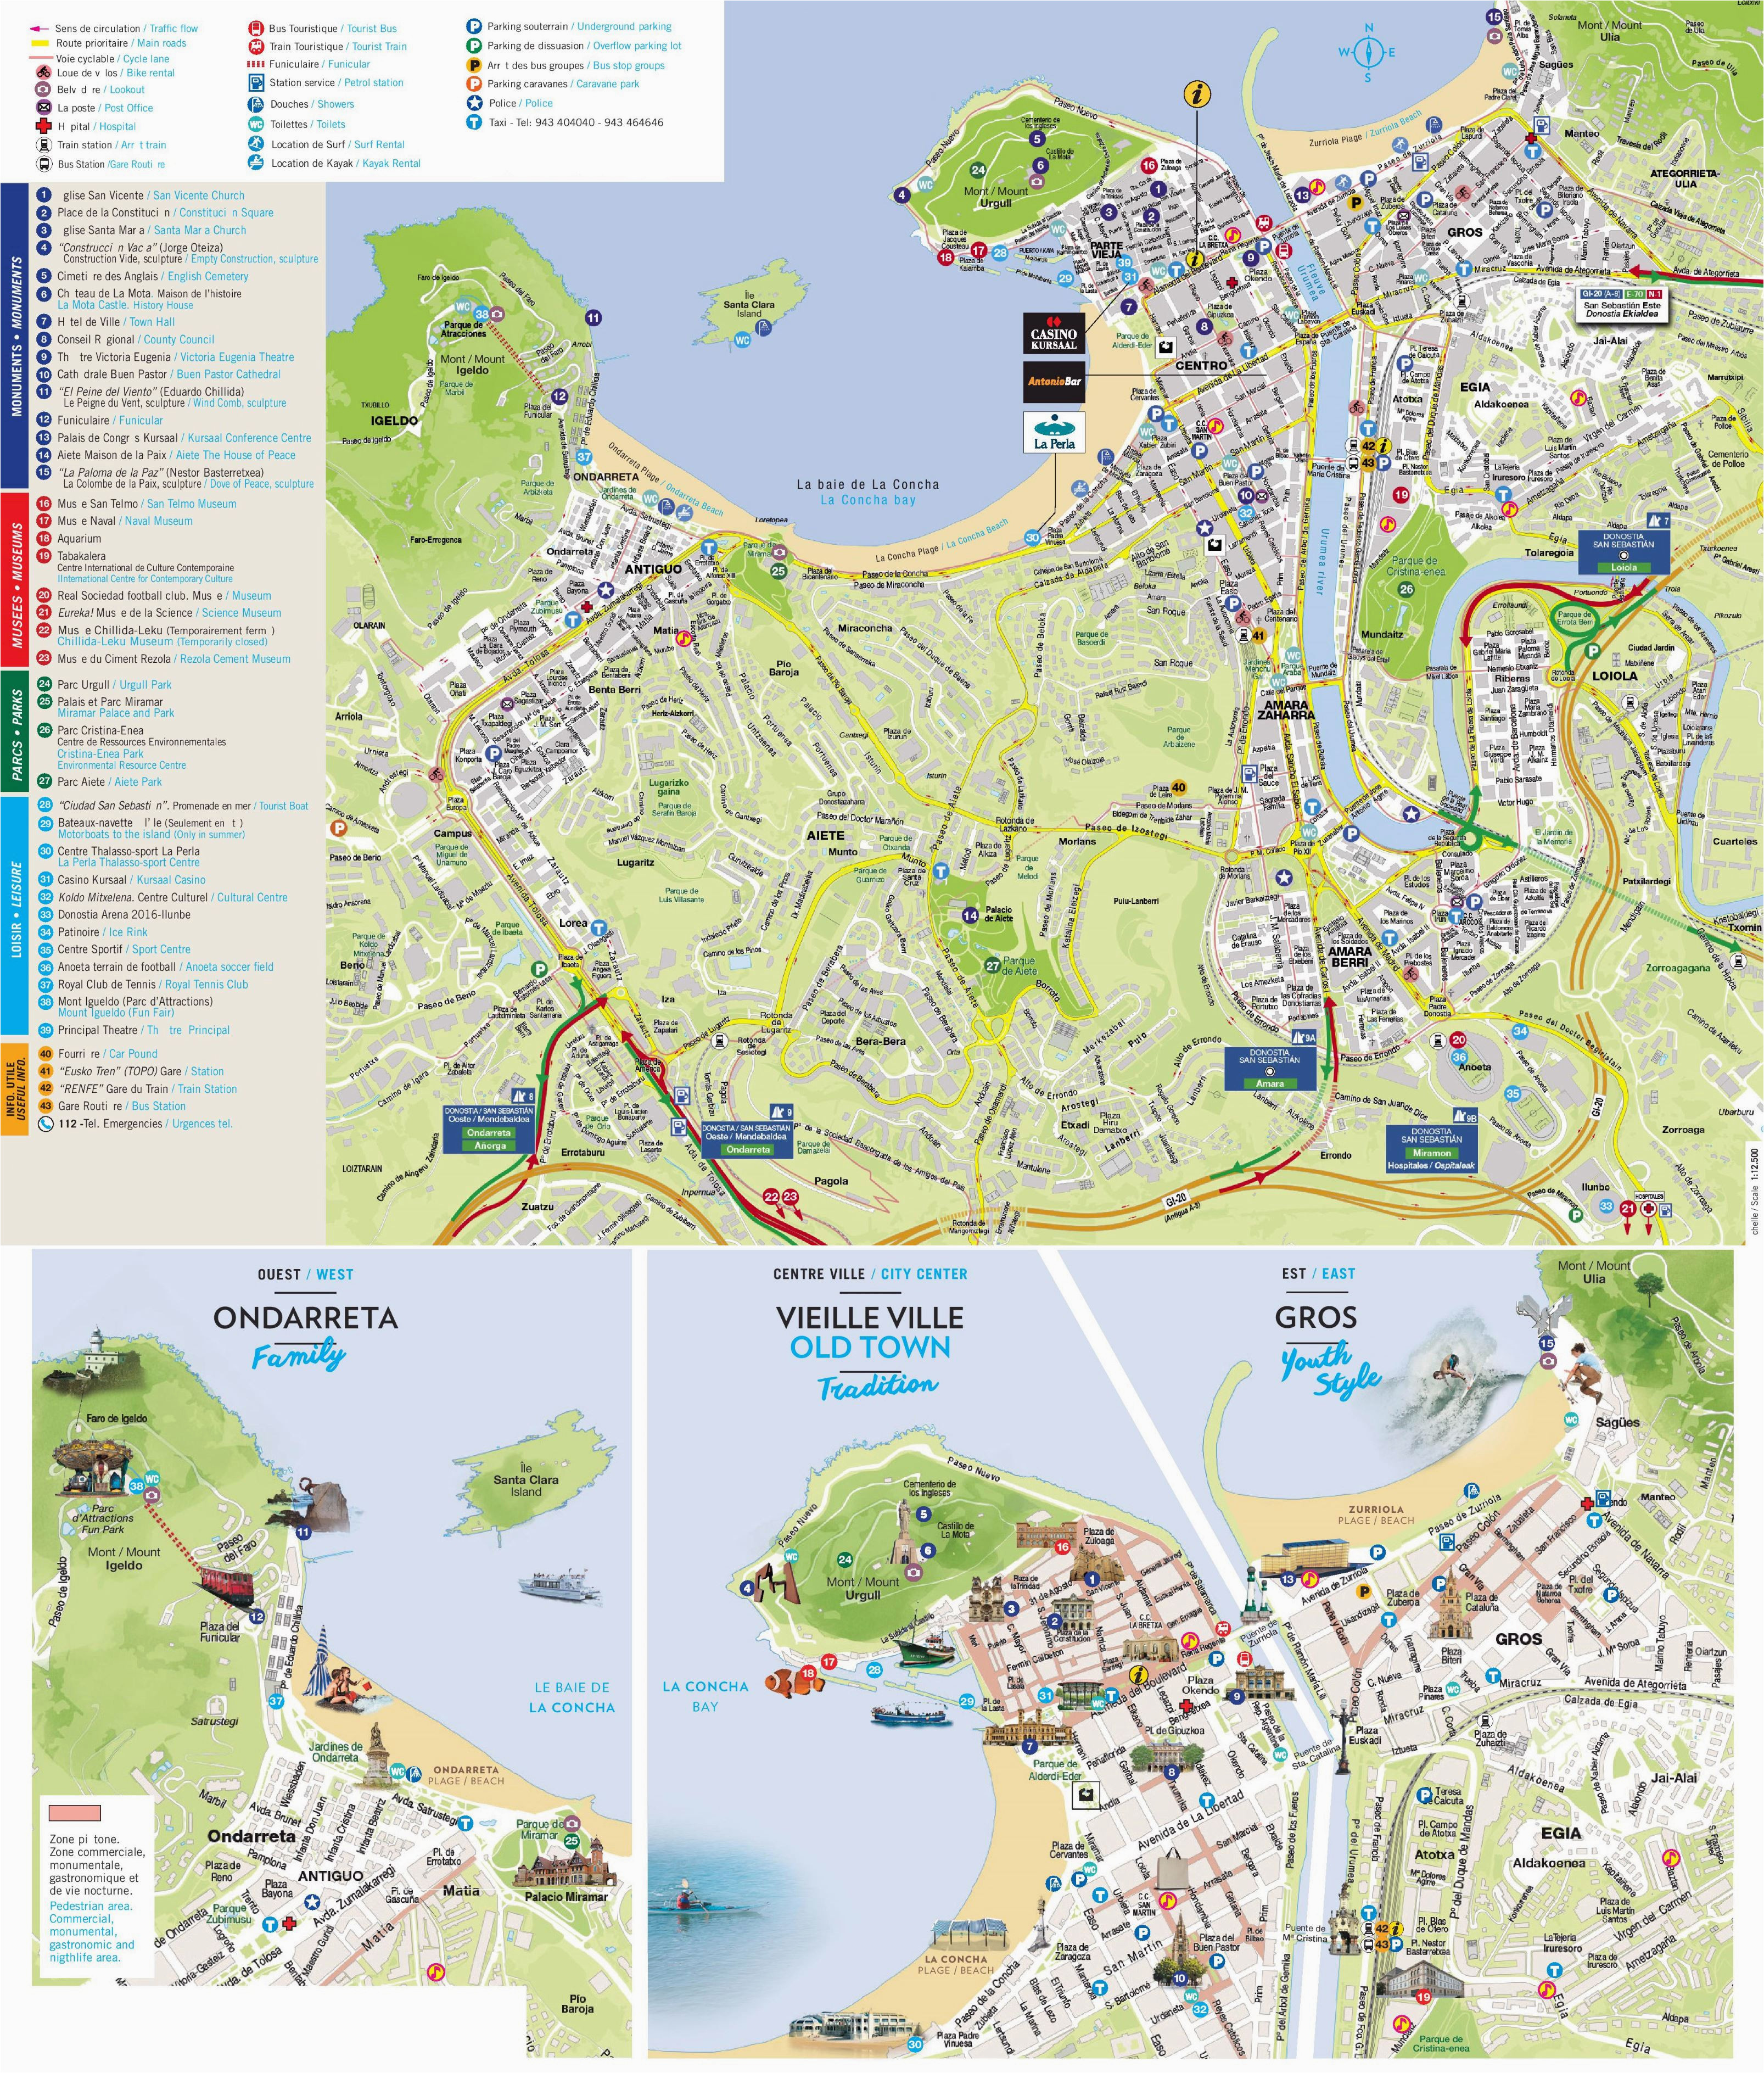 large san sebastian maps for free download and print high